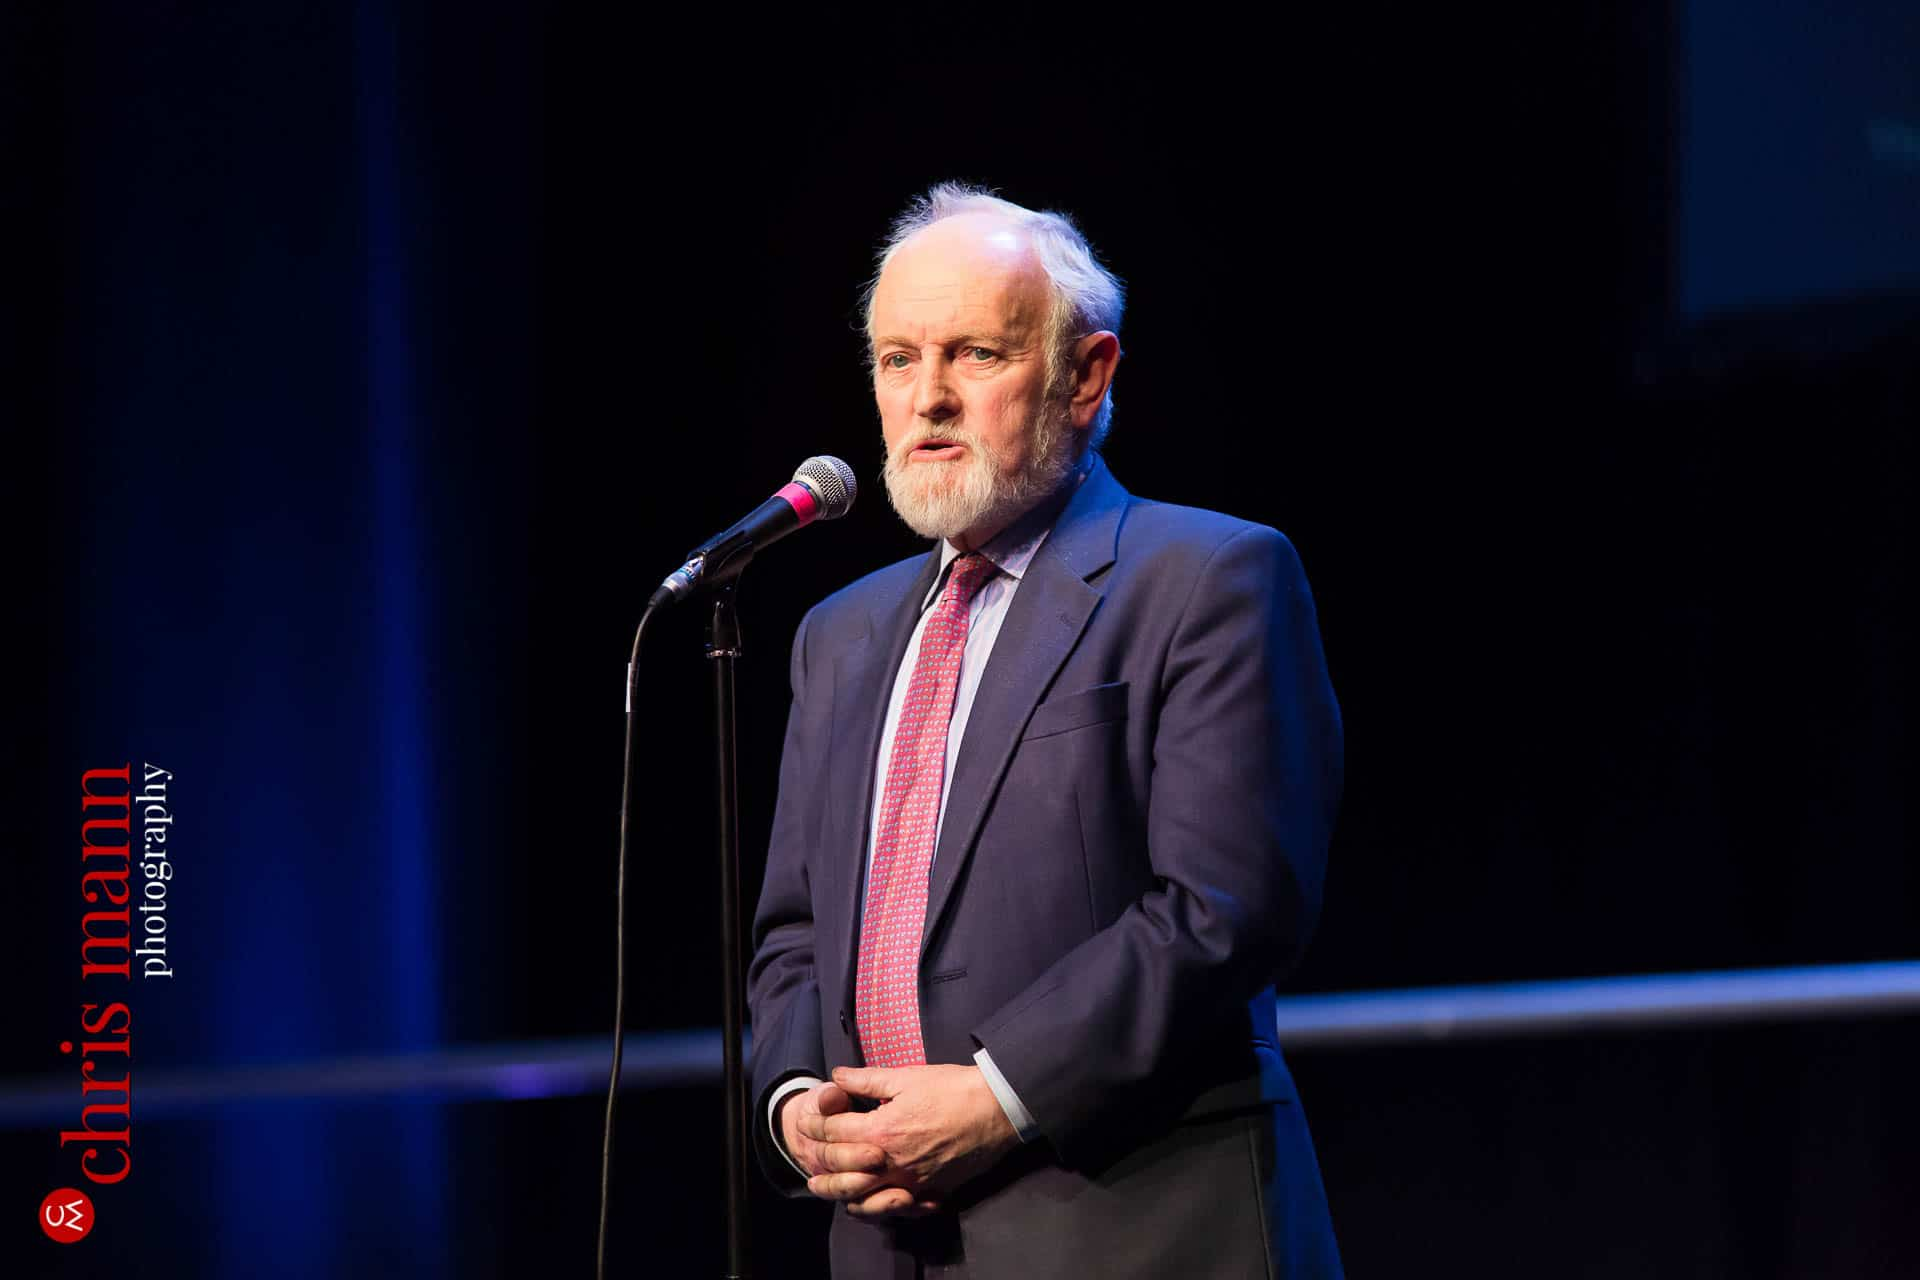 Sir Richard Stilgoe speaks at Choiroke 2016 concert Dorking Halls